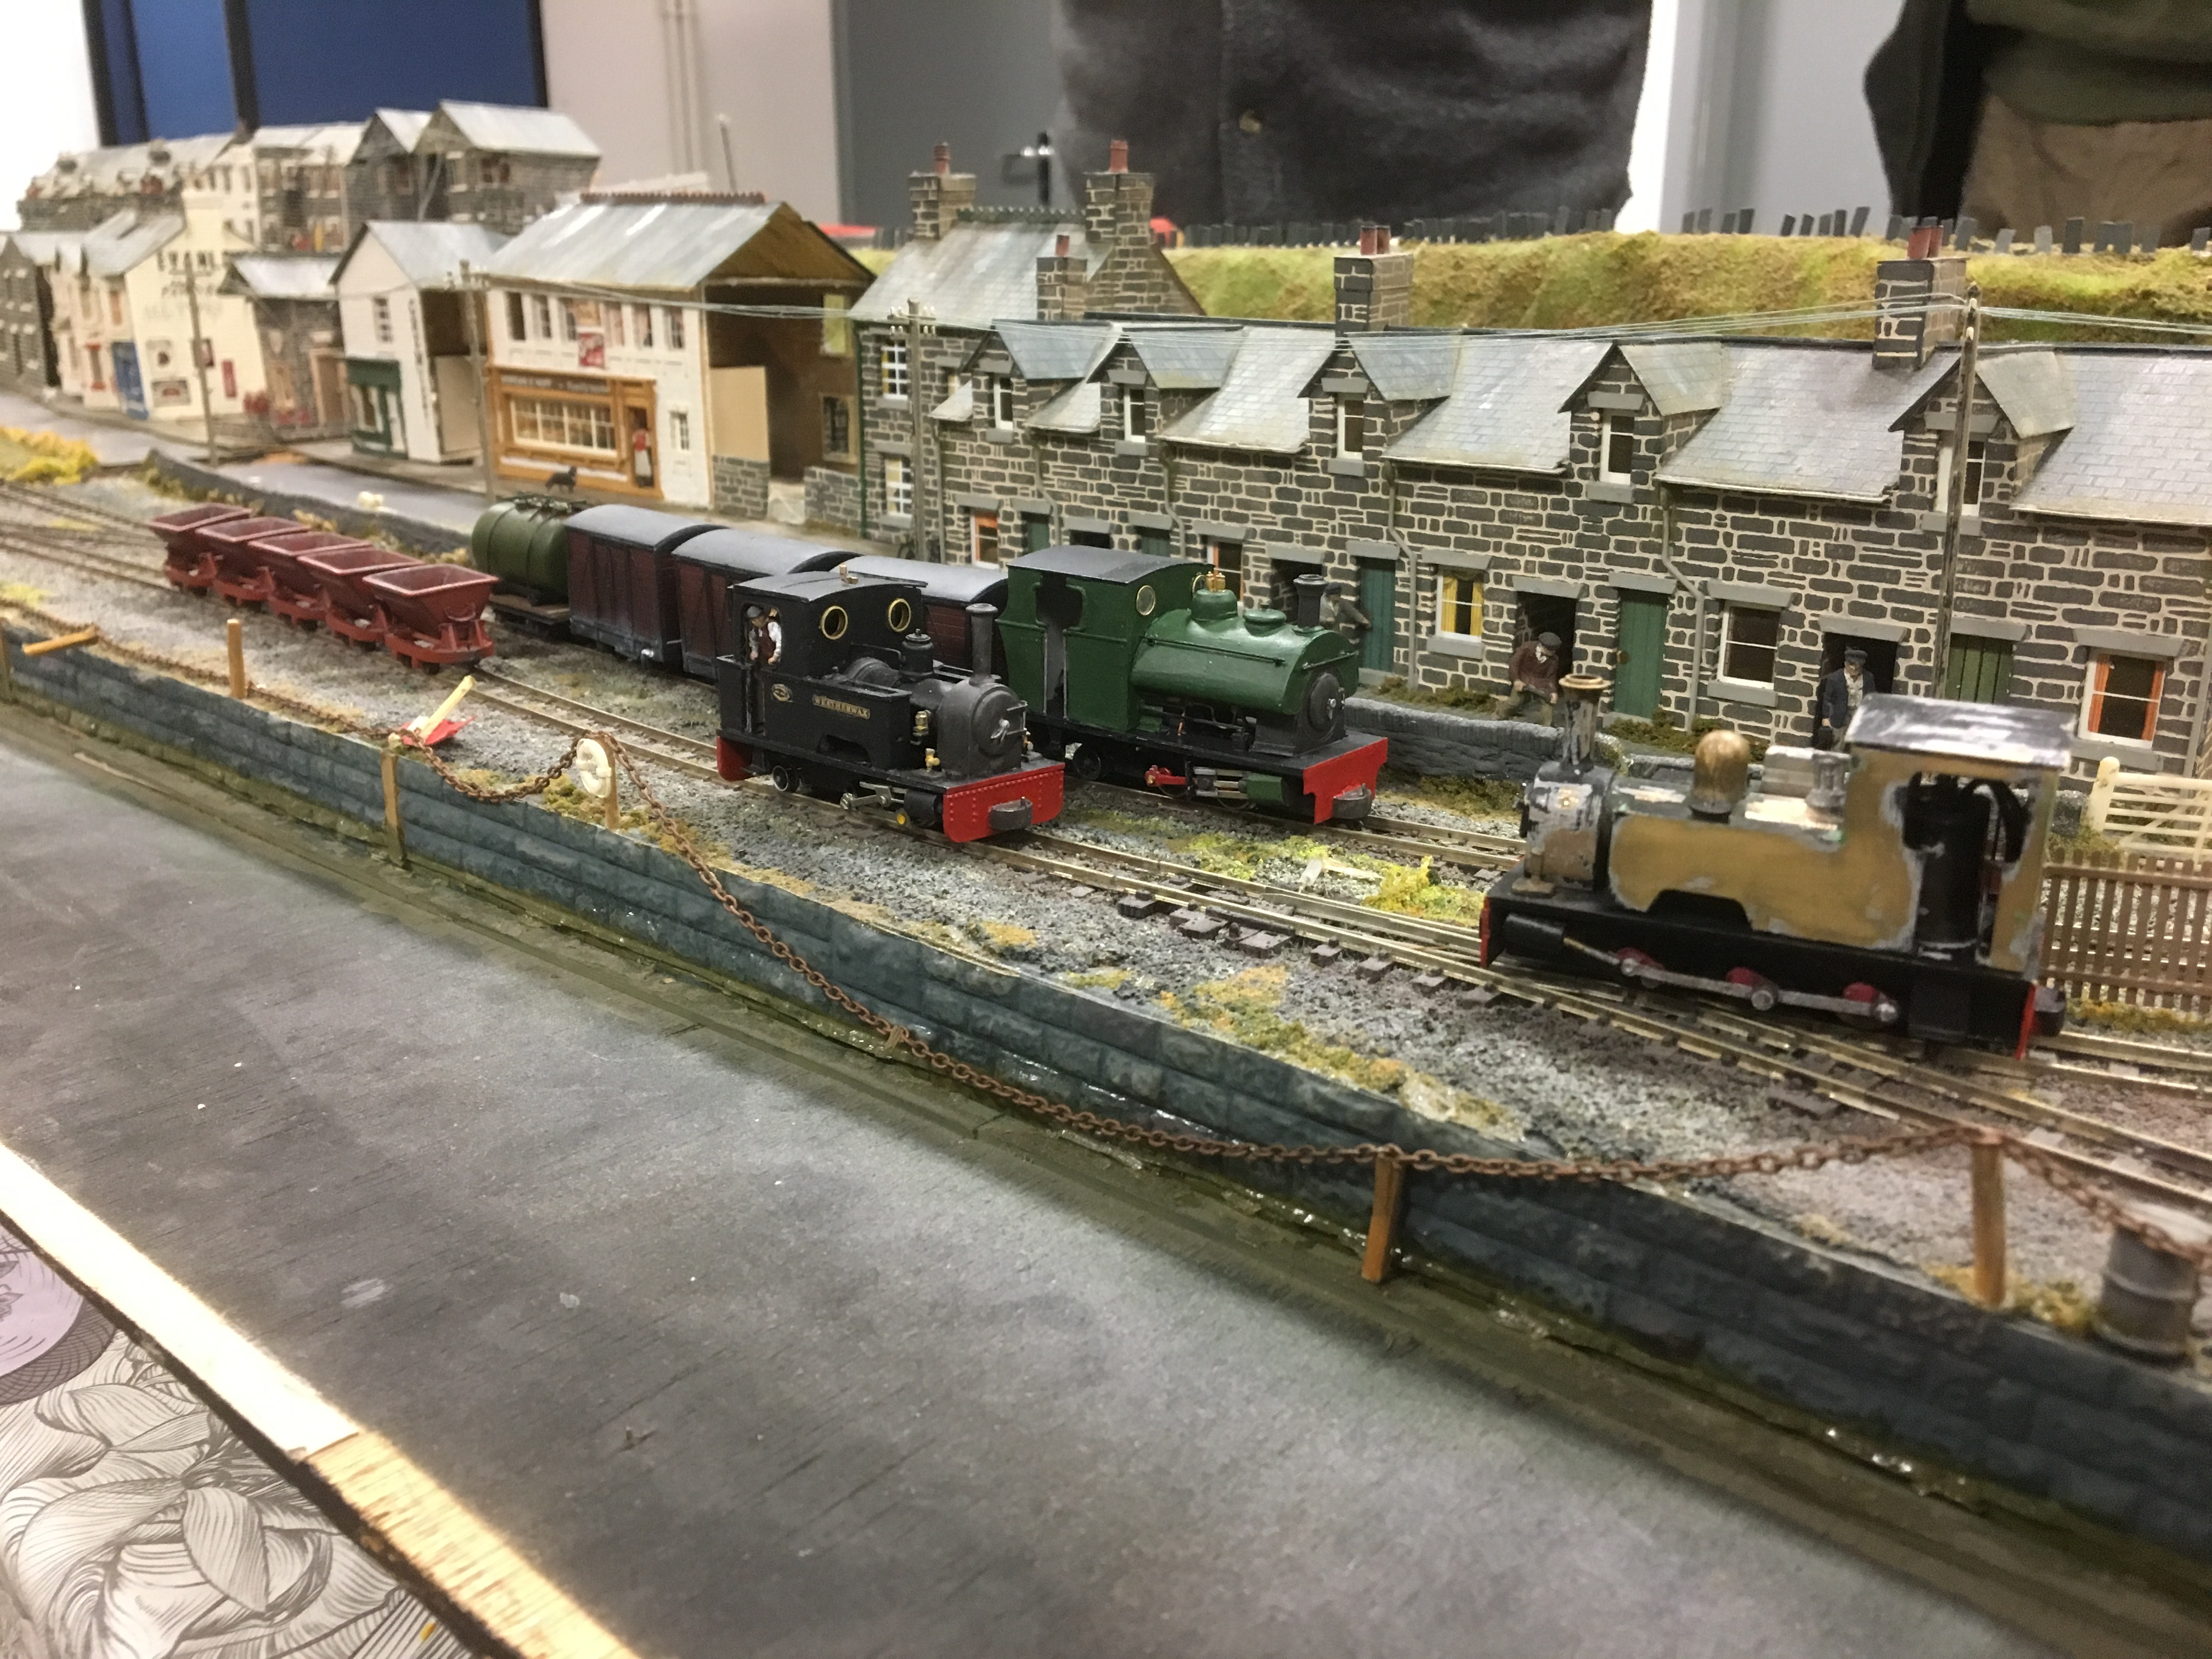 Ben Powell's Peckett and Kerr Stuart locos, Will's 0-6-0 Bagnall and a selection of their stock.